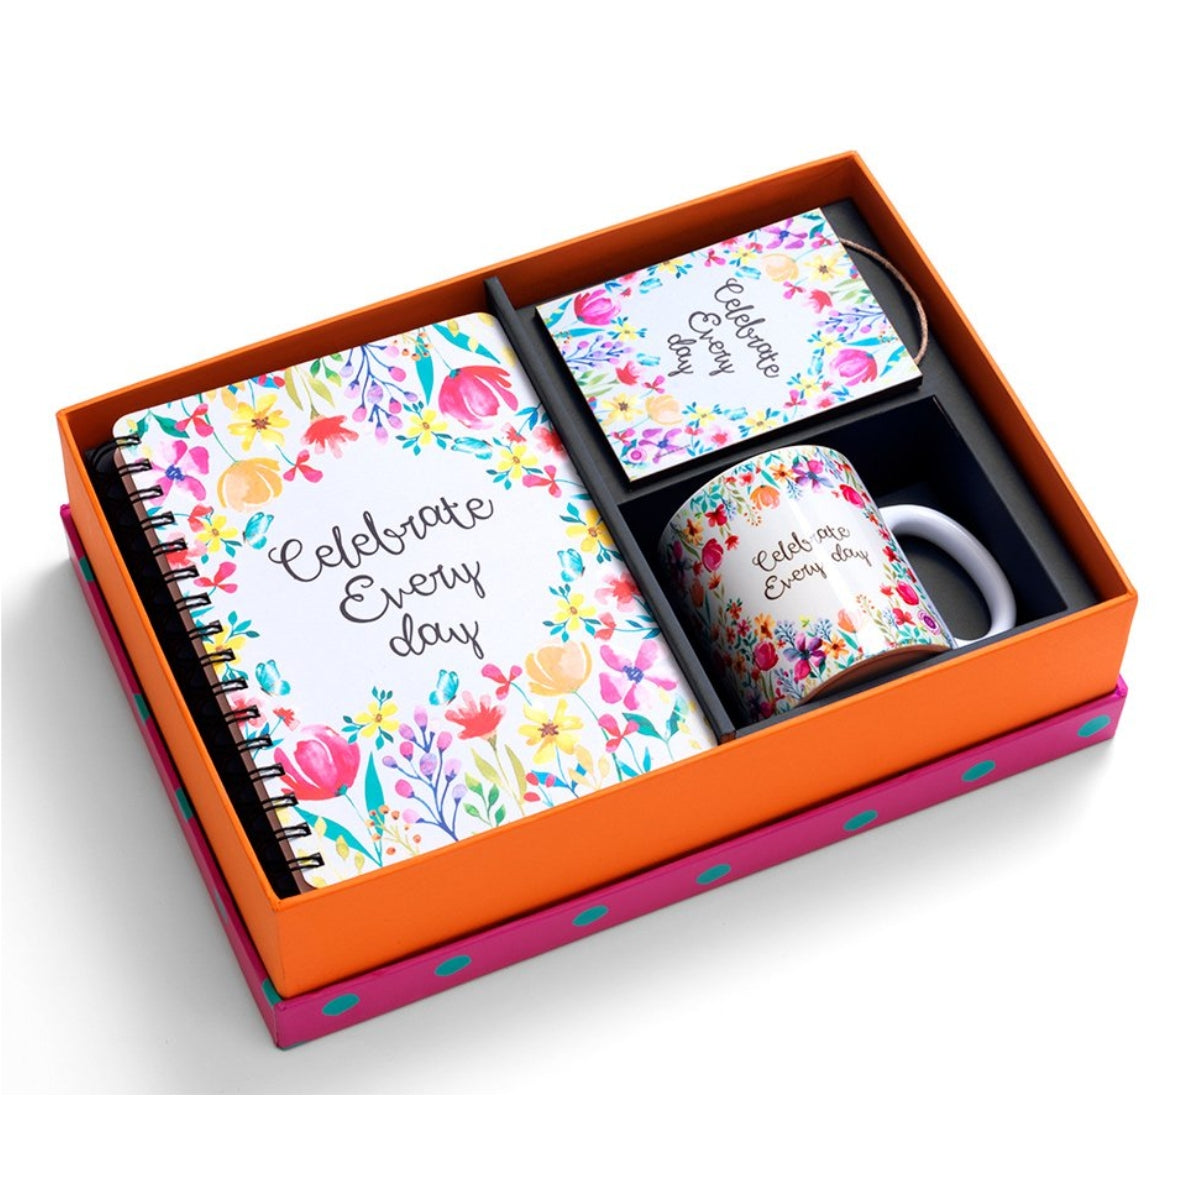 Celebrate Every Day - Gift Set